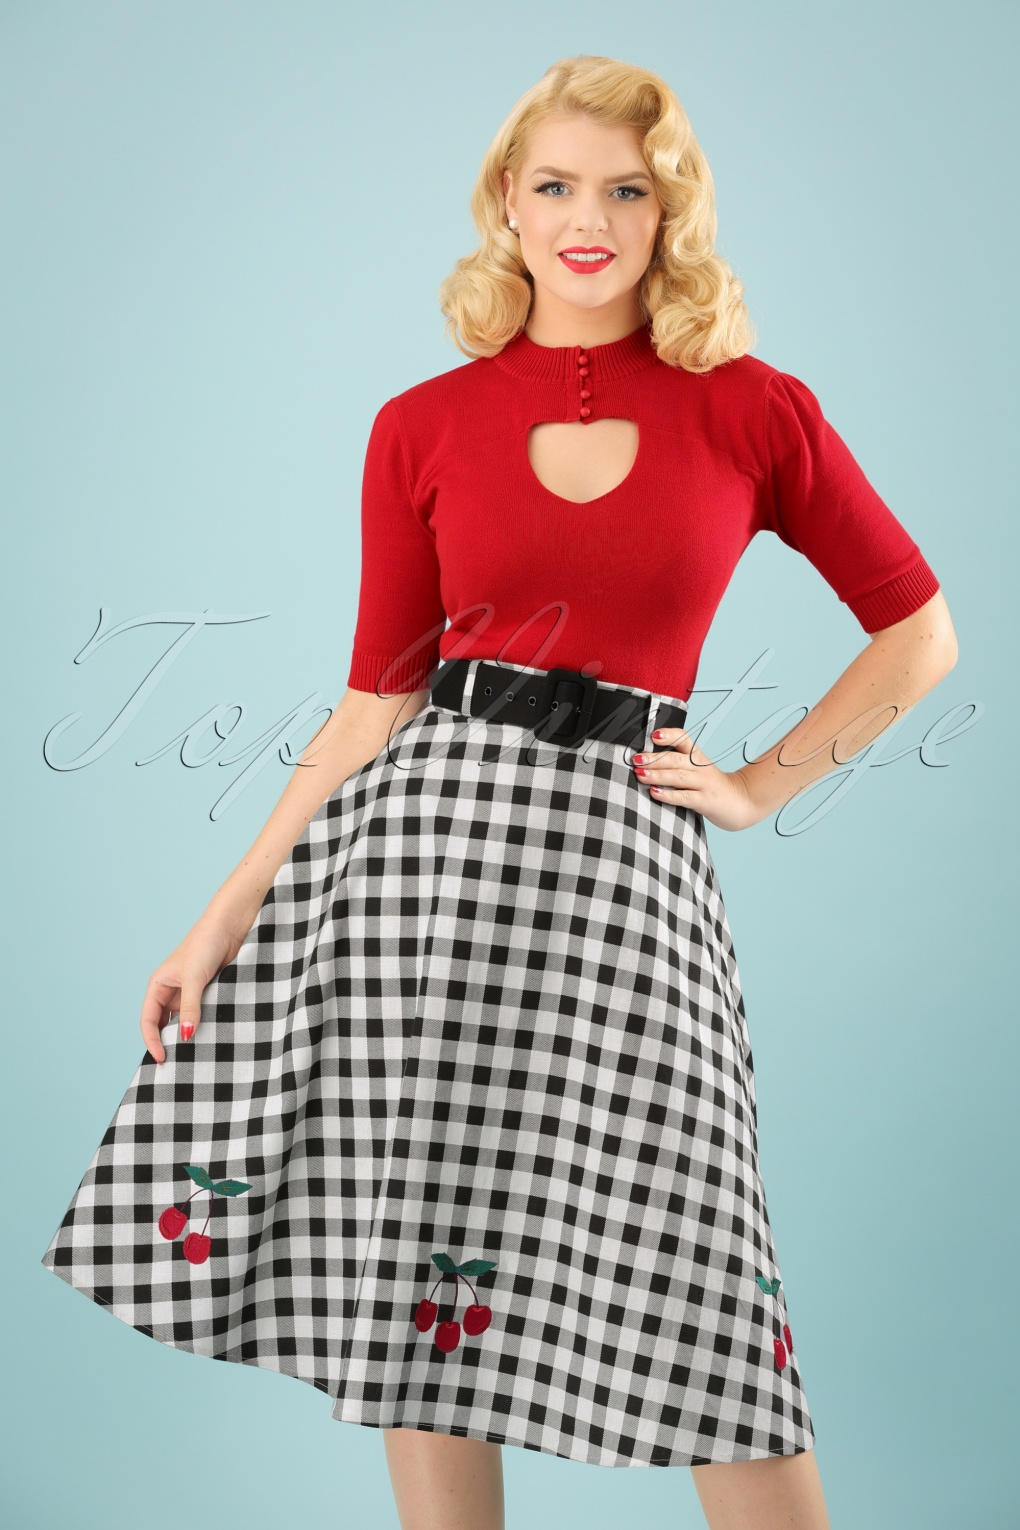 50s Skirt Styles | Poodle Skirts, Circle Skirts, Pencil Skirts 50s Cherry Vintage Gingham Swing Skirt in Black and White £48.29 AT vintagedancer.com